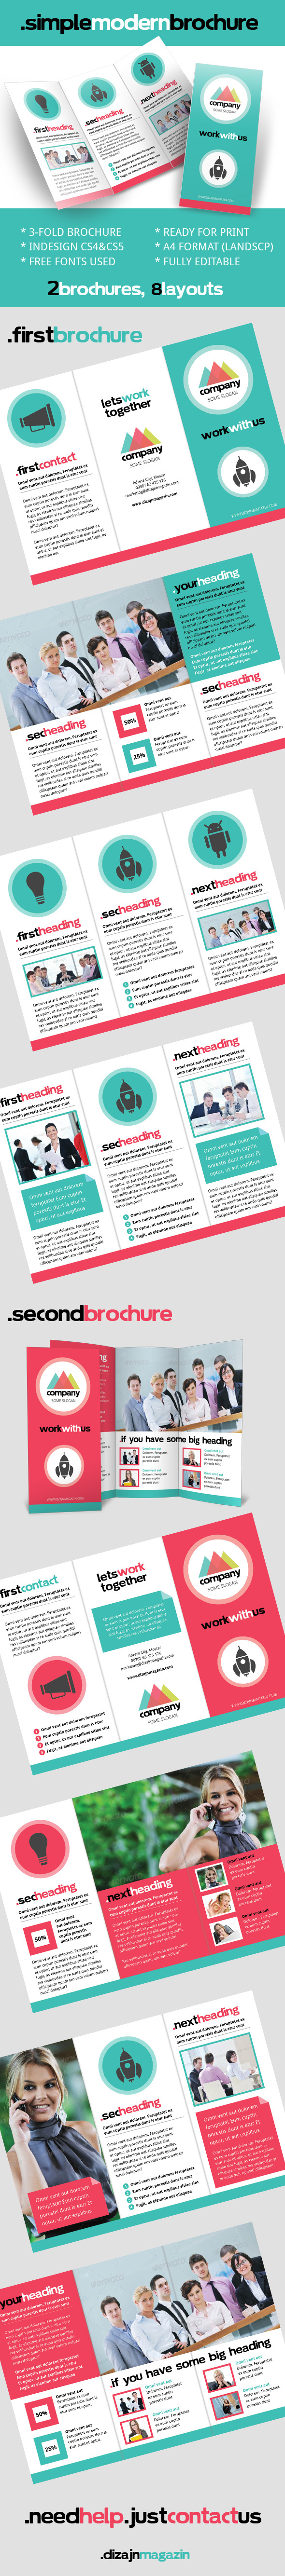 Simple Modern Brochure InDesign Template for Free | Brochures ...